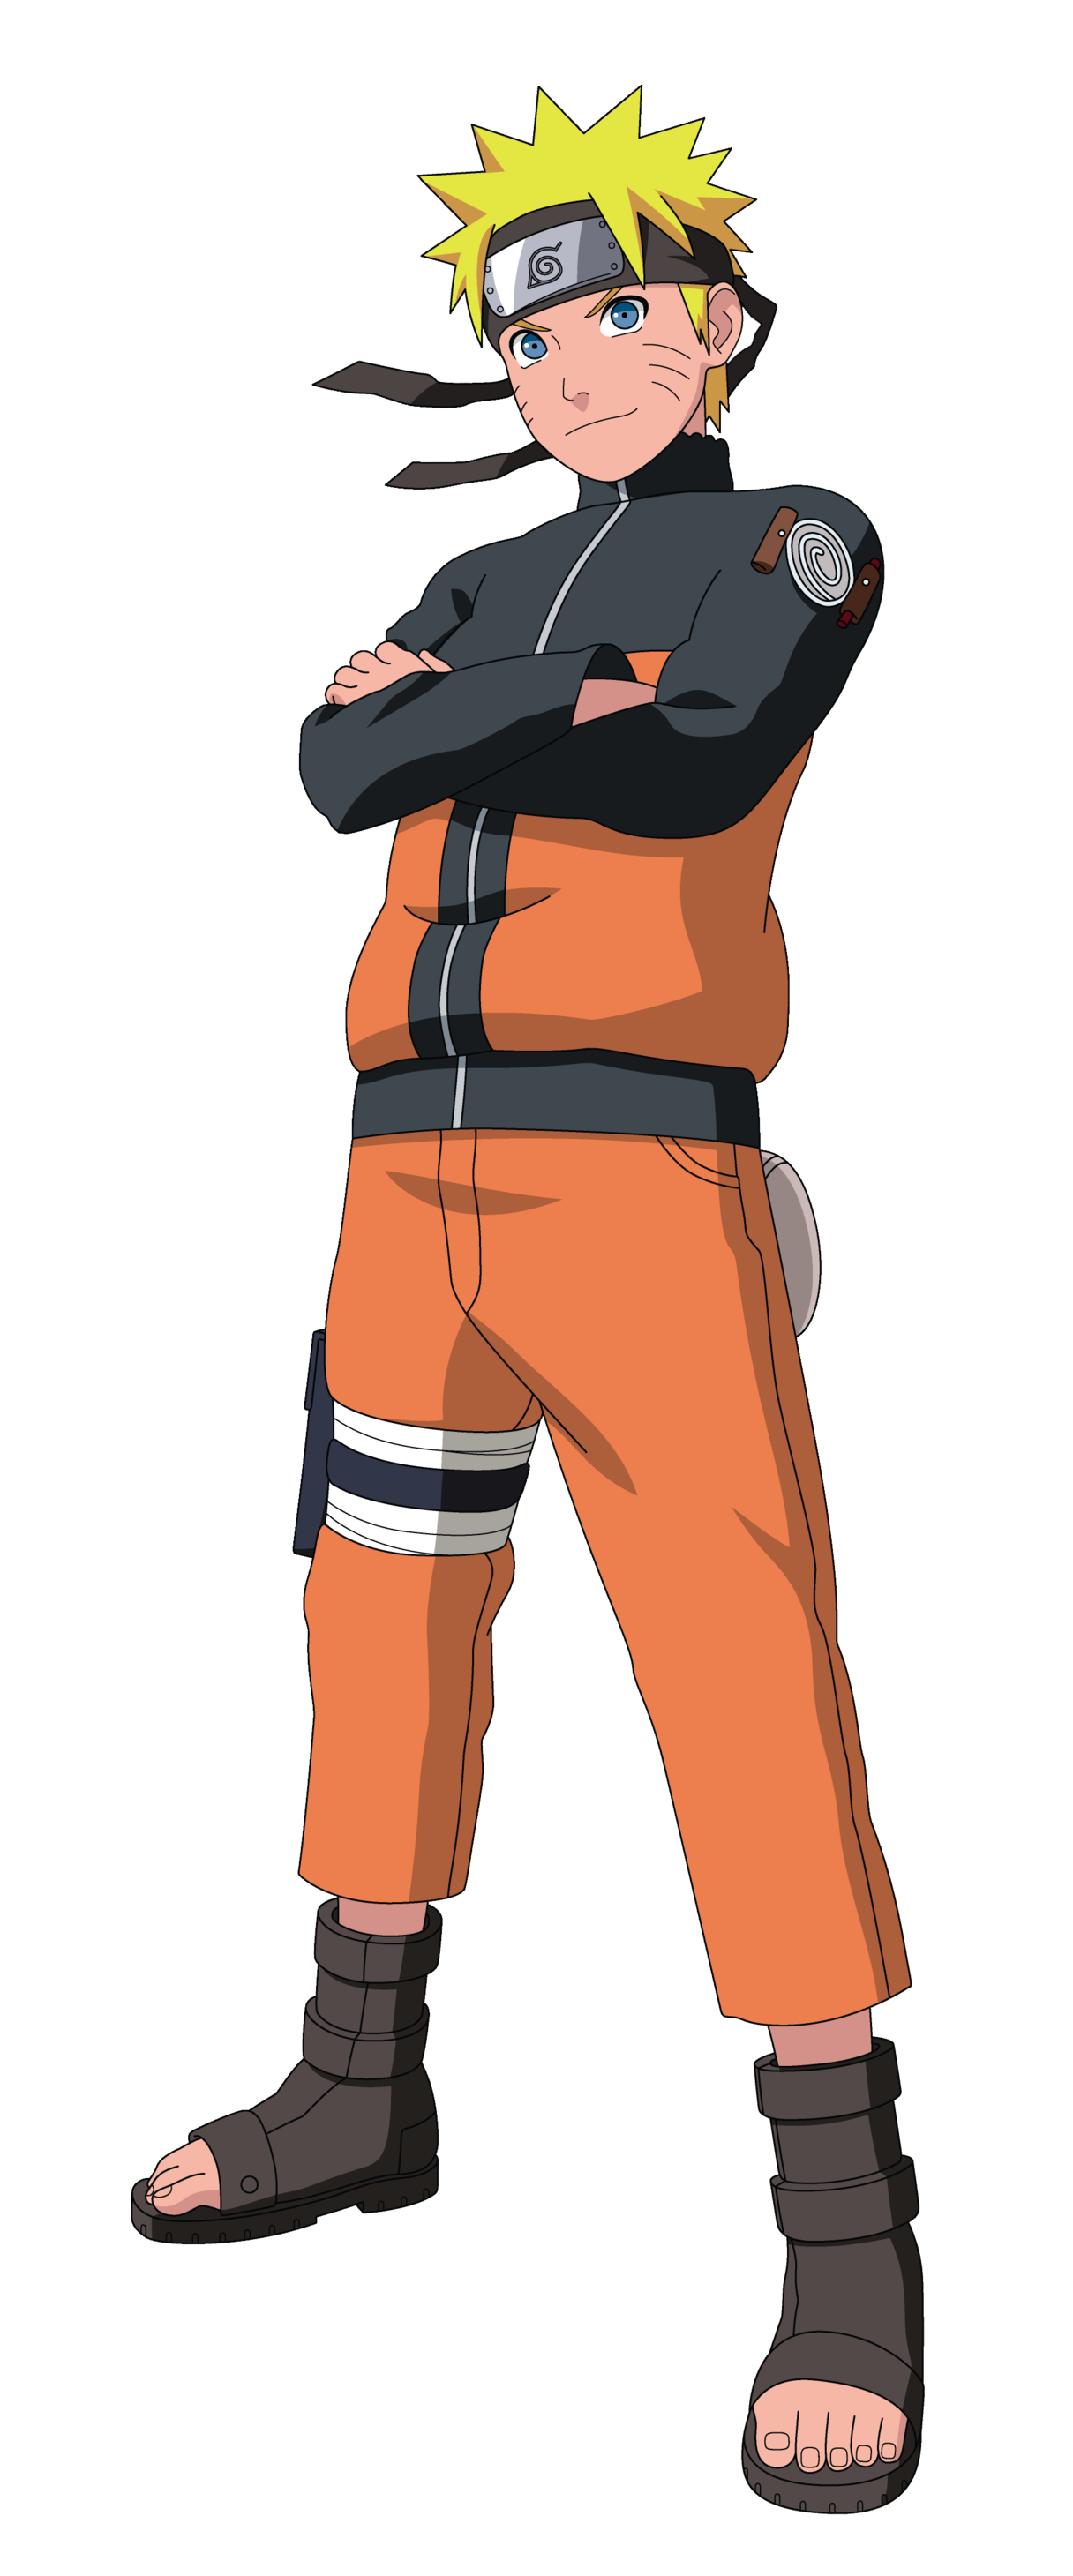 Naruto png images. Picture gallery yopriceville high